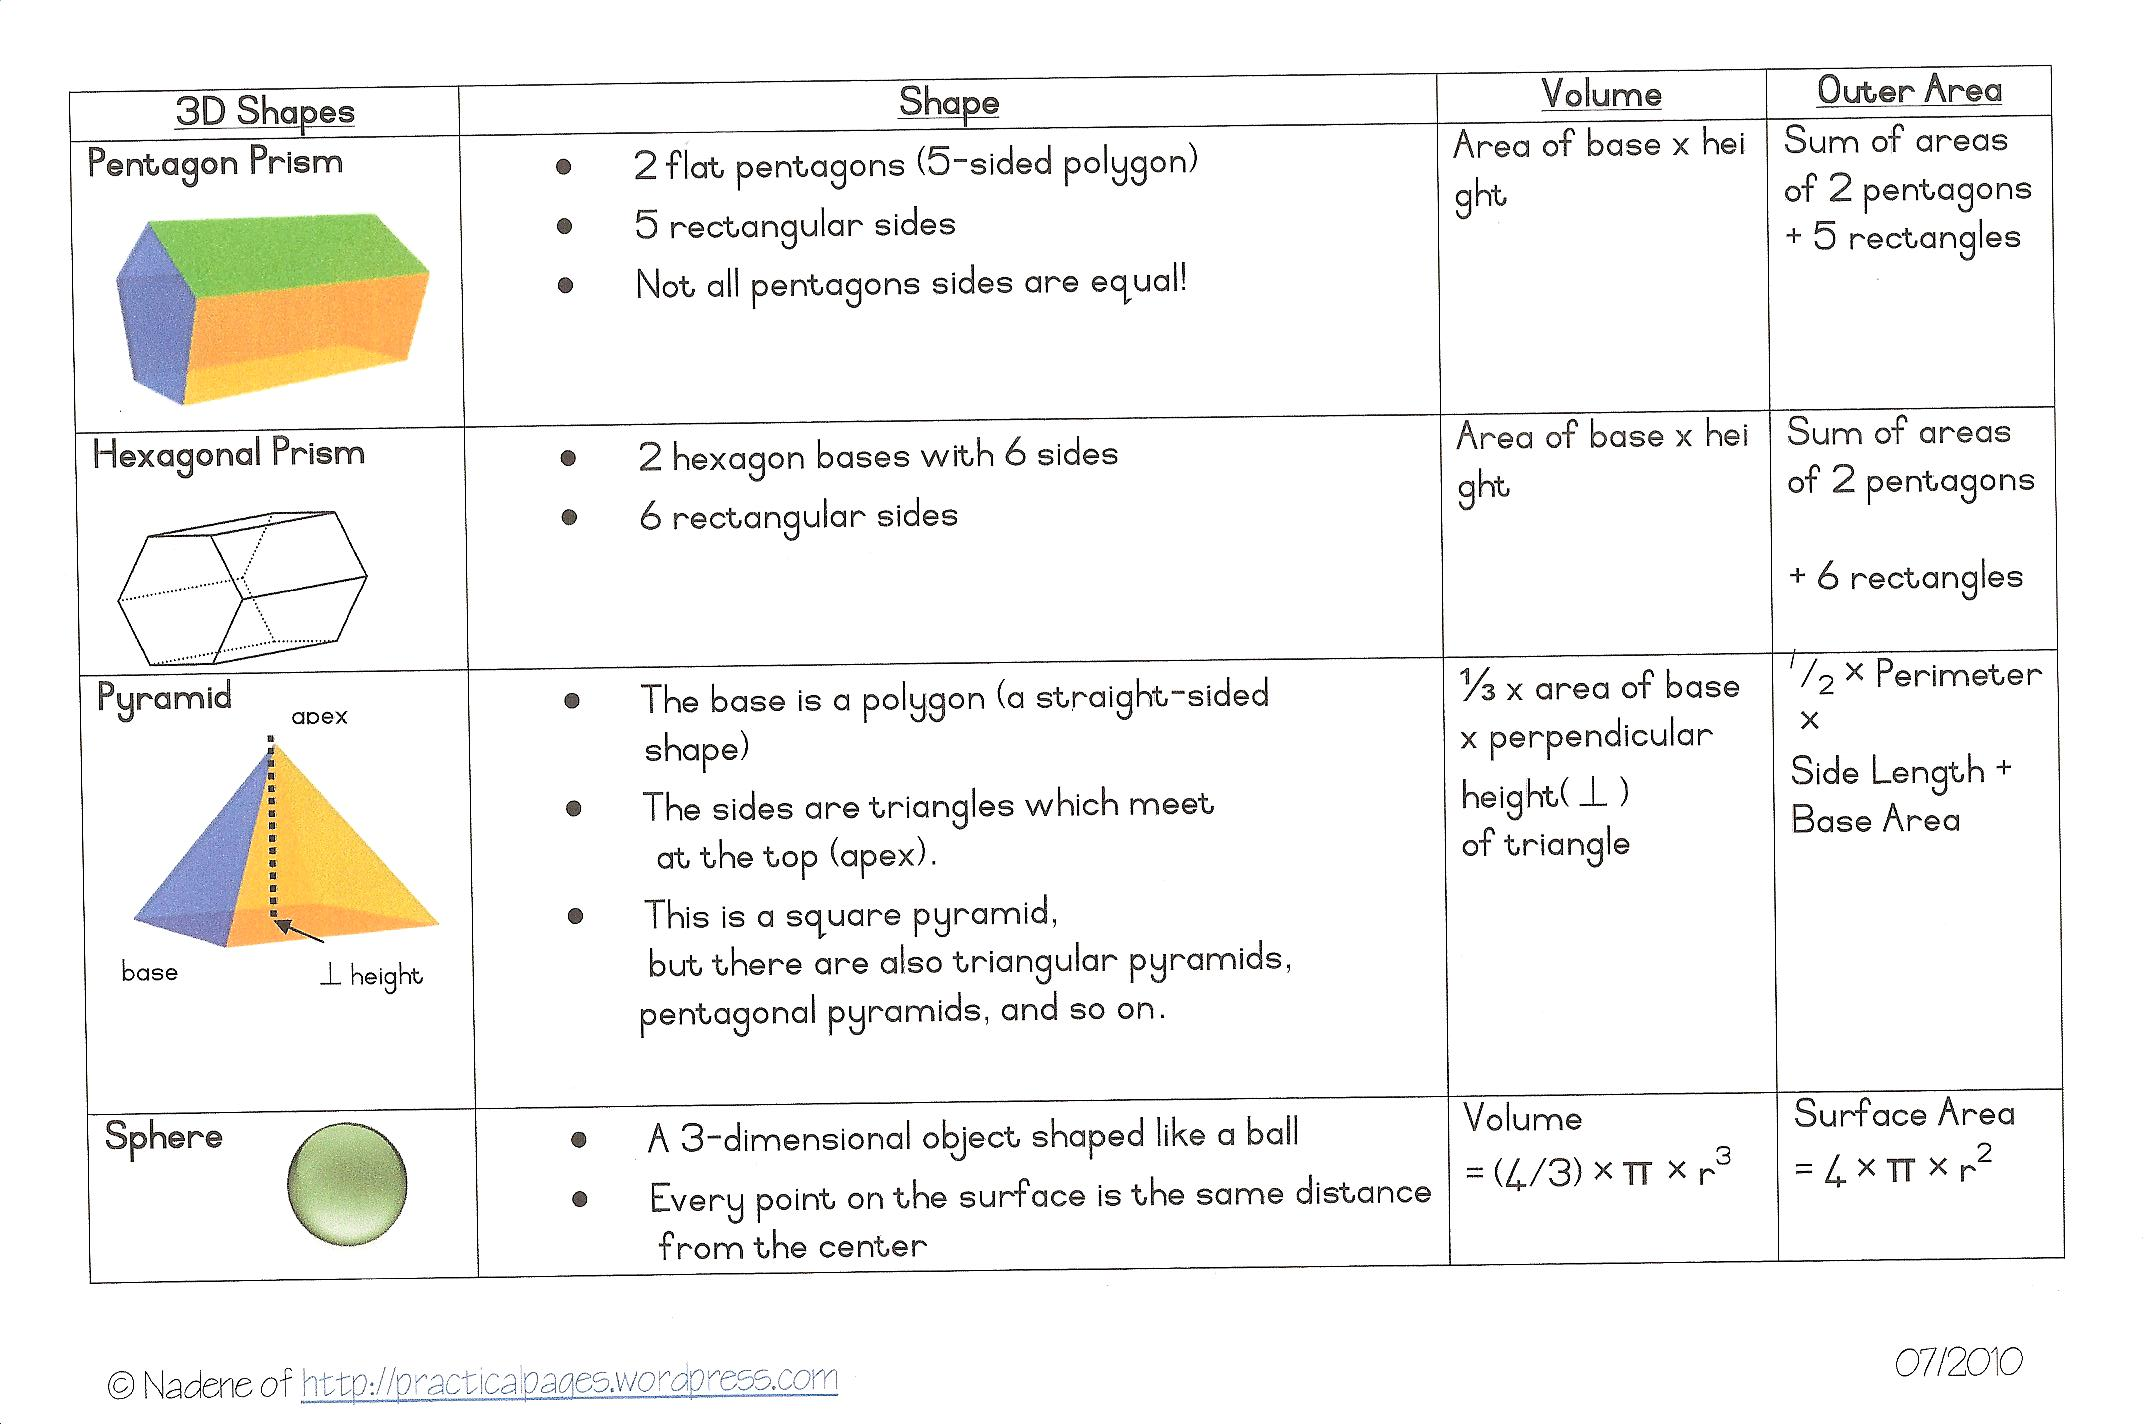 How To Work Out The Volume Of A Pentagonal Prism